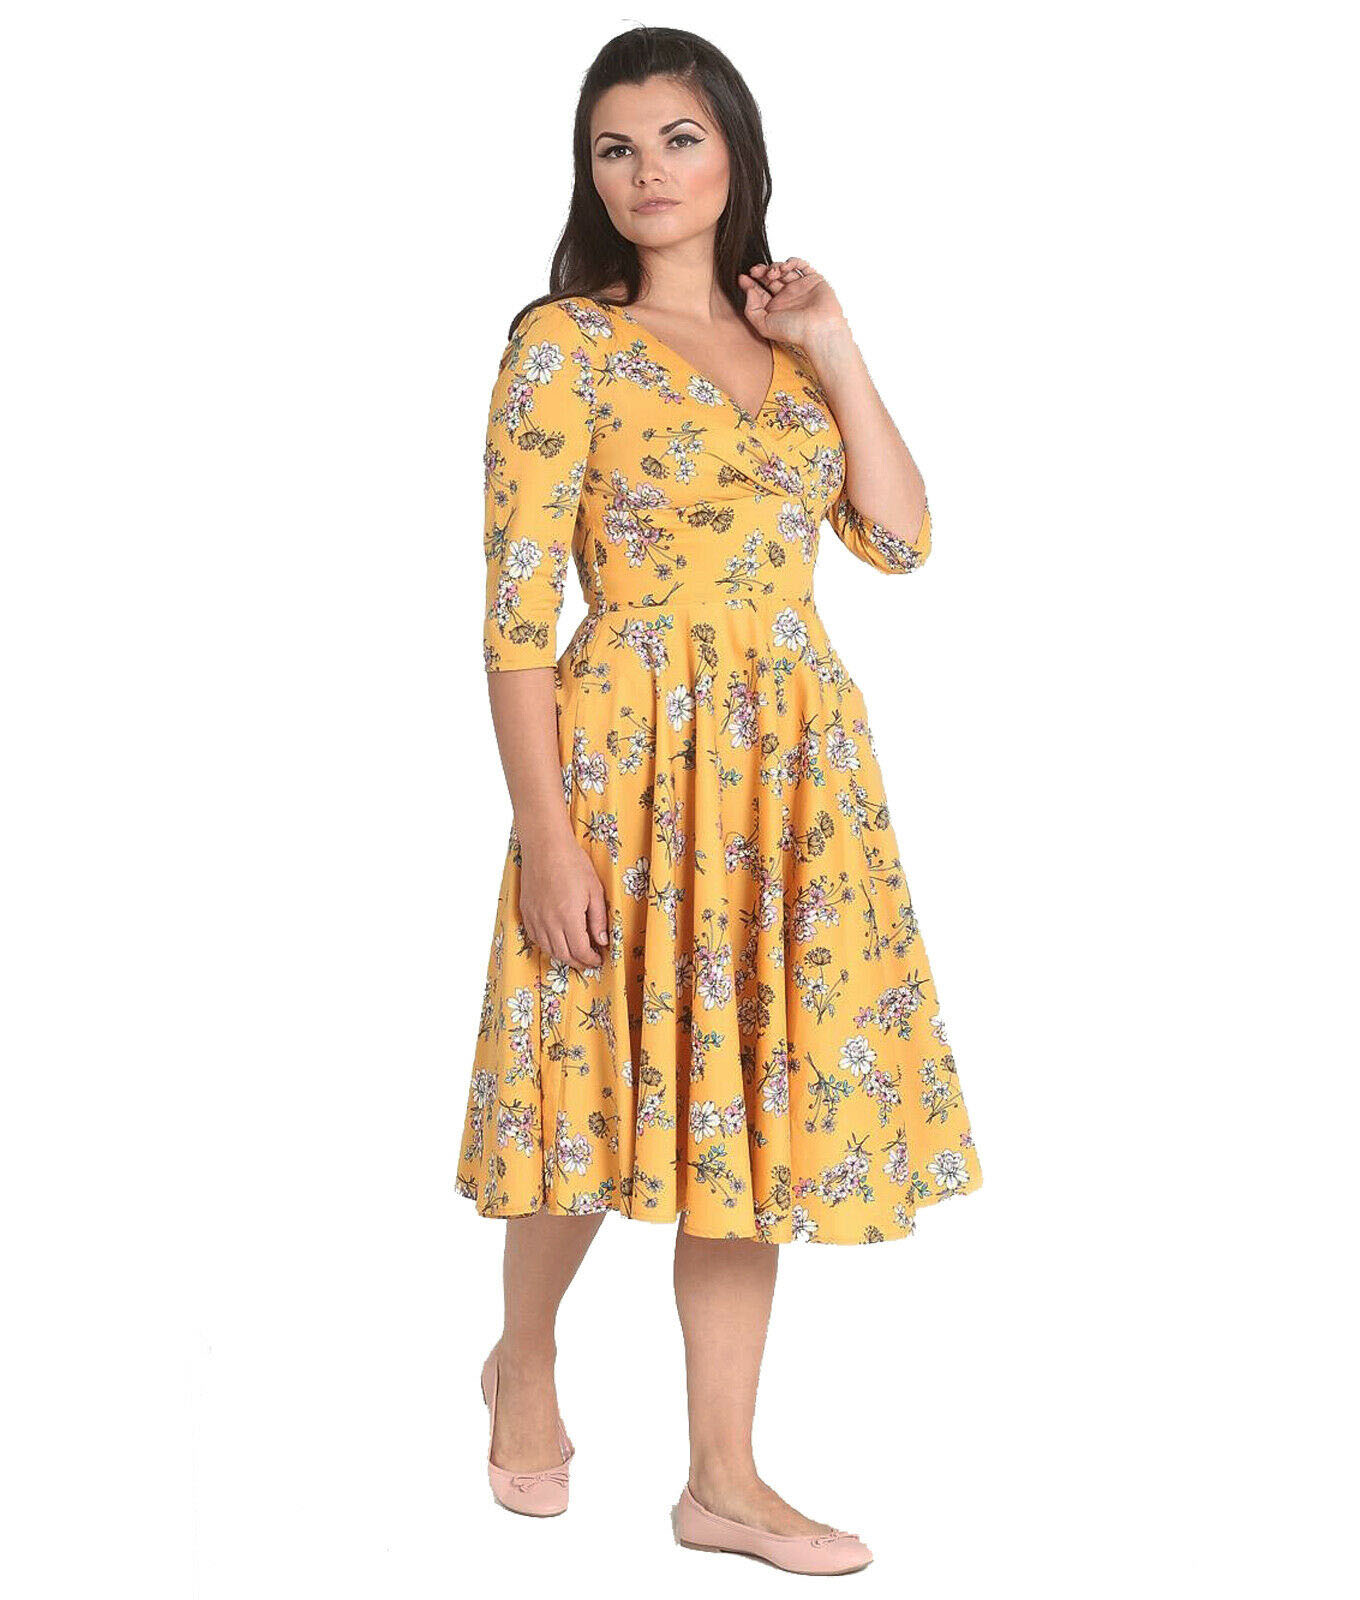 Hell-Bunny-40s-50s-Pin-Up-Vintage-Dress-MURIEL-Flowers-Yellow-All-Sizes thumbnail 19